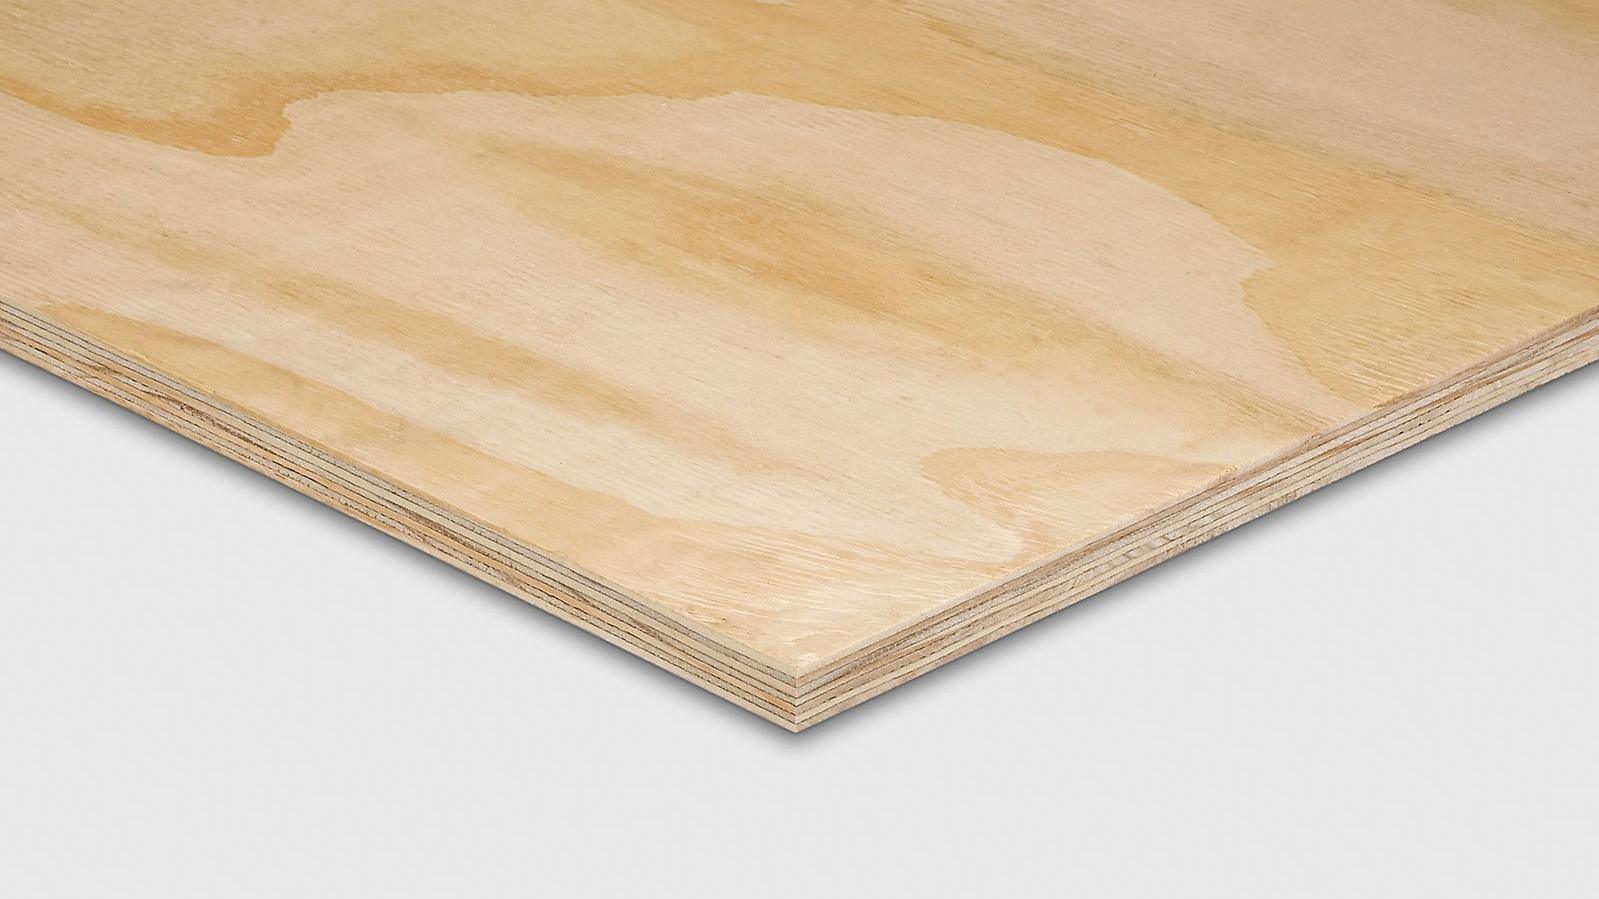 Structural Hardwood / Softwood Plywood | Falcon Panel Products